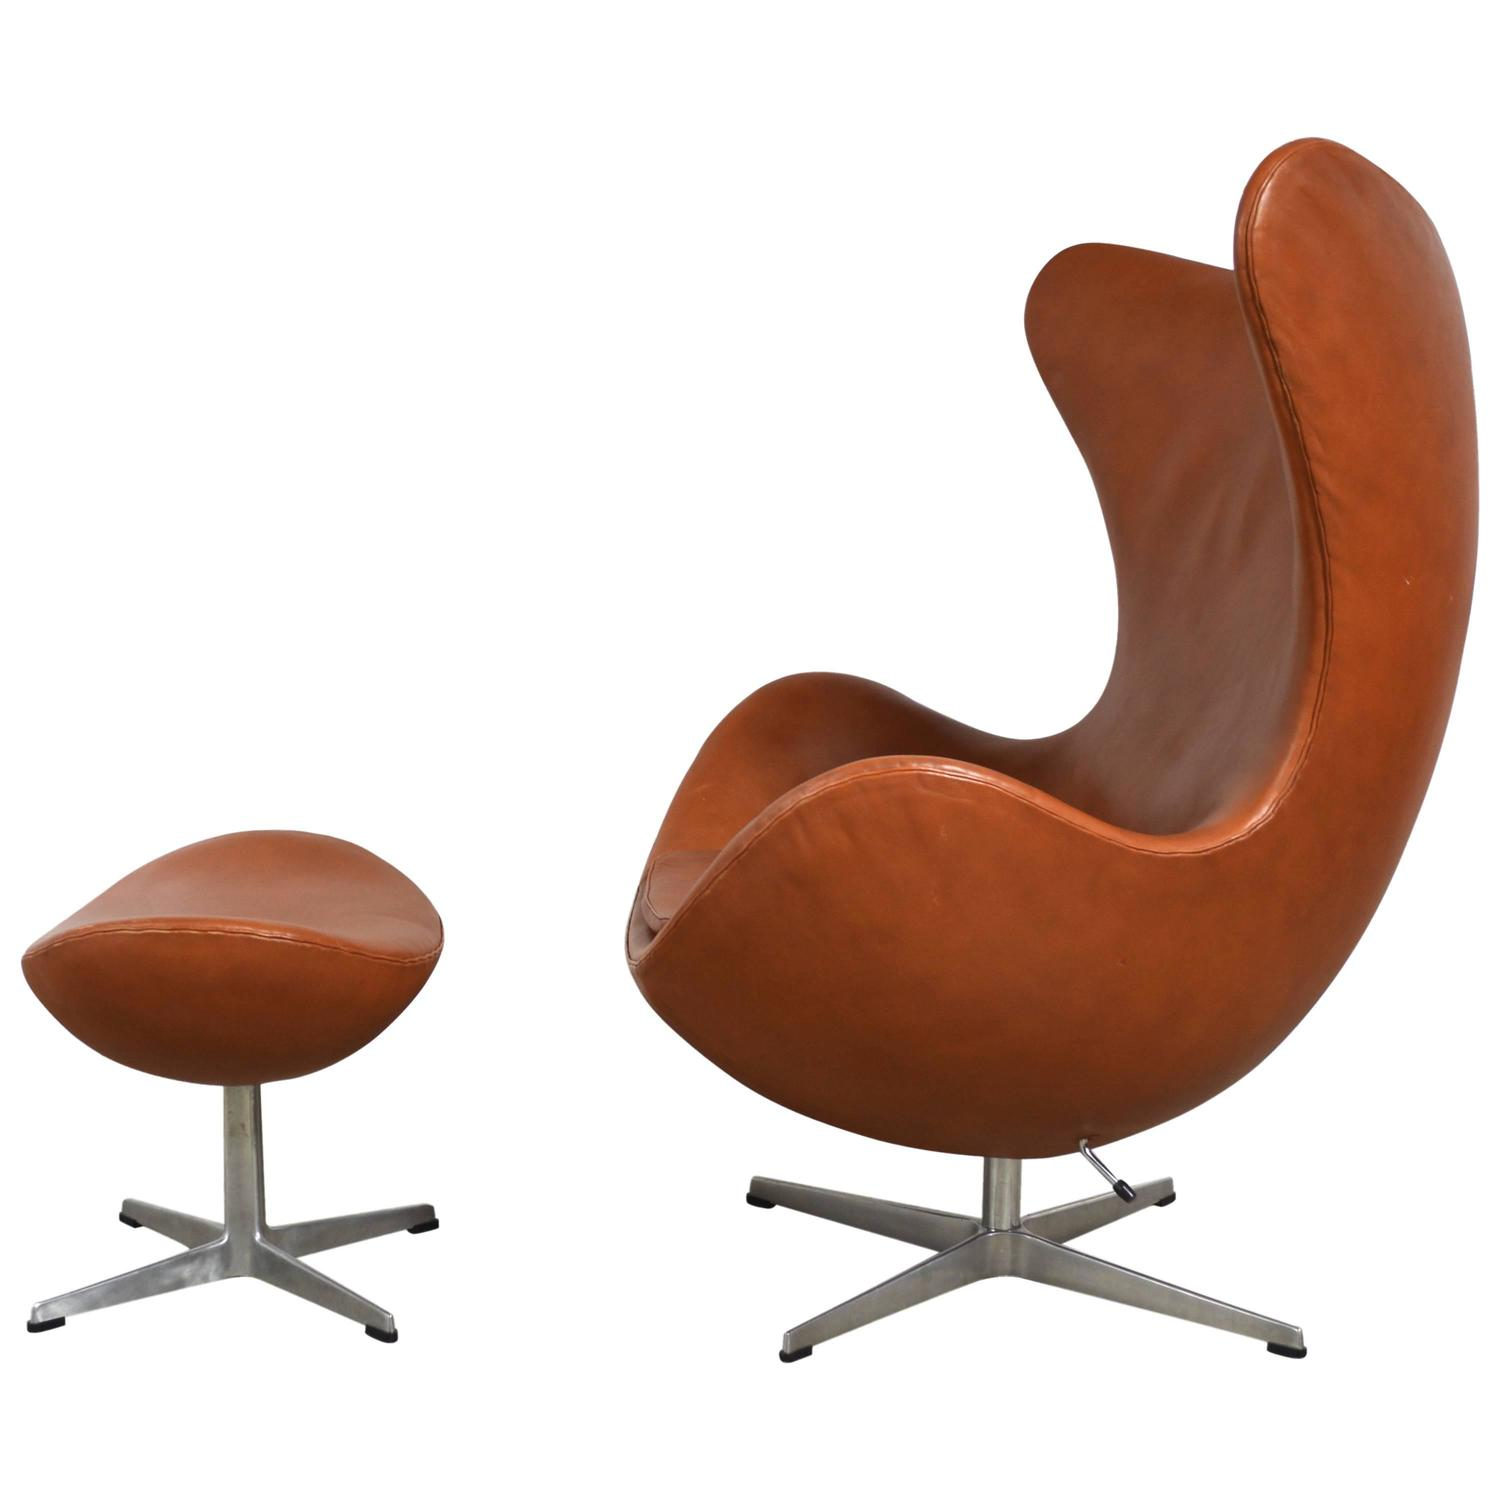 arne jacobsen leather egg chair and ottoman at 1stdibs. Black Bedroom Furniture Sets. Home Design Ideas